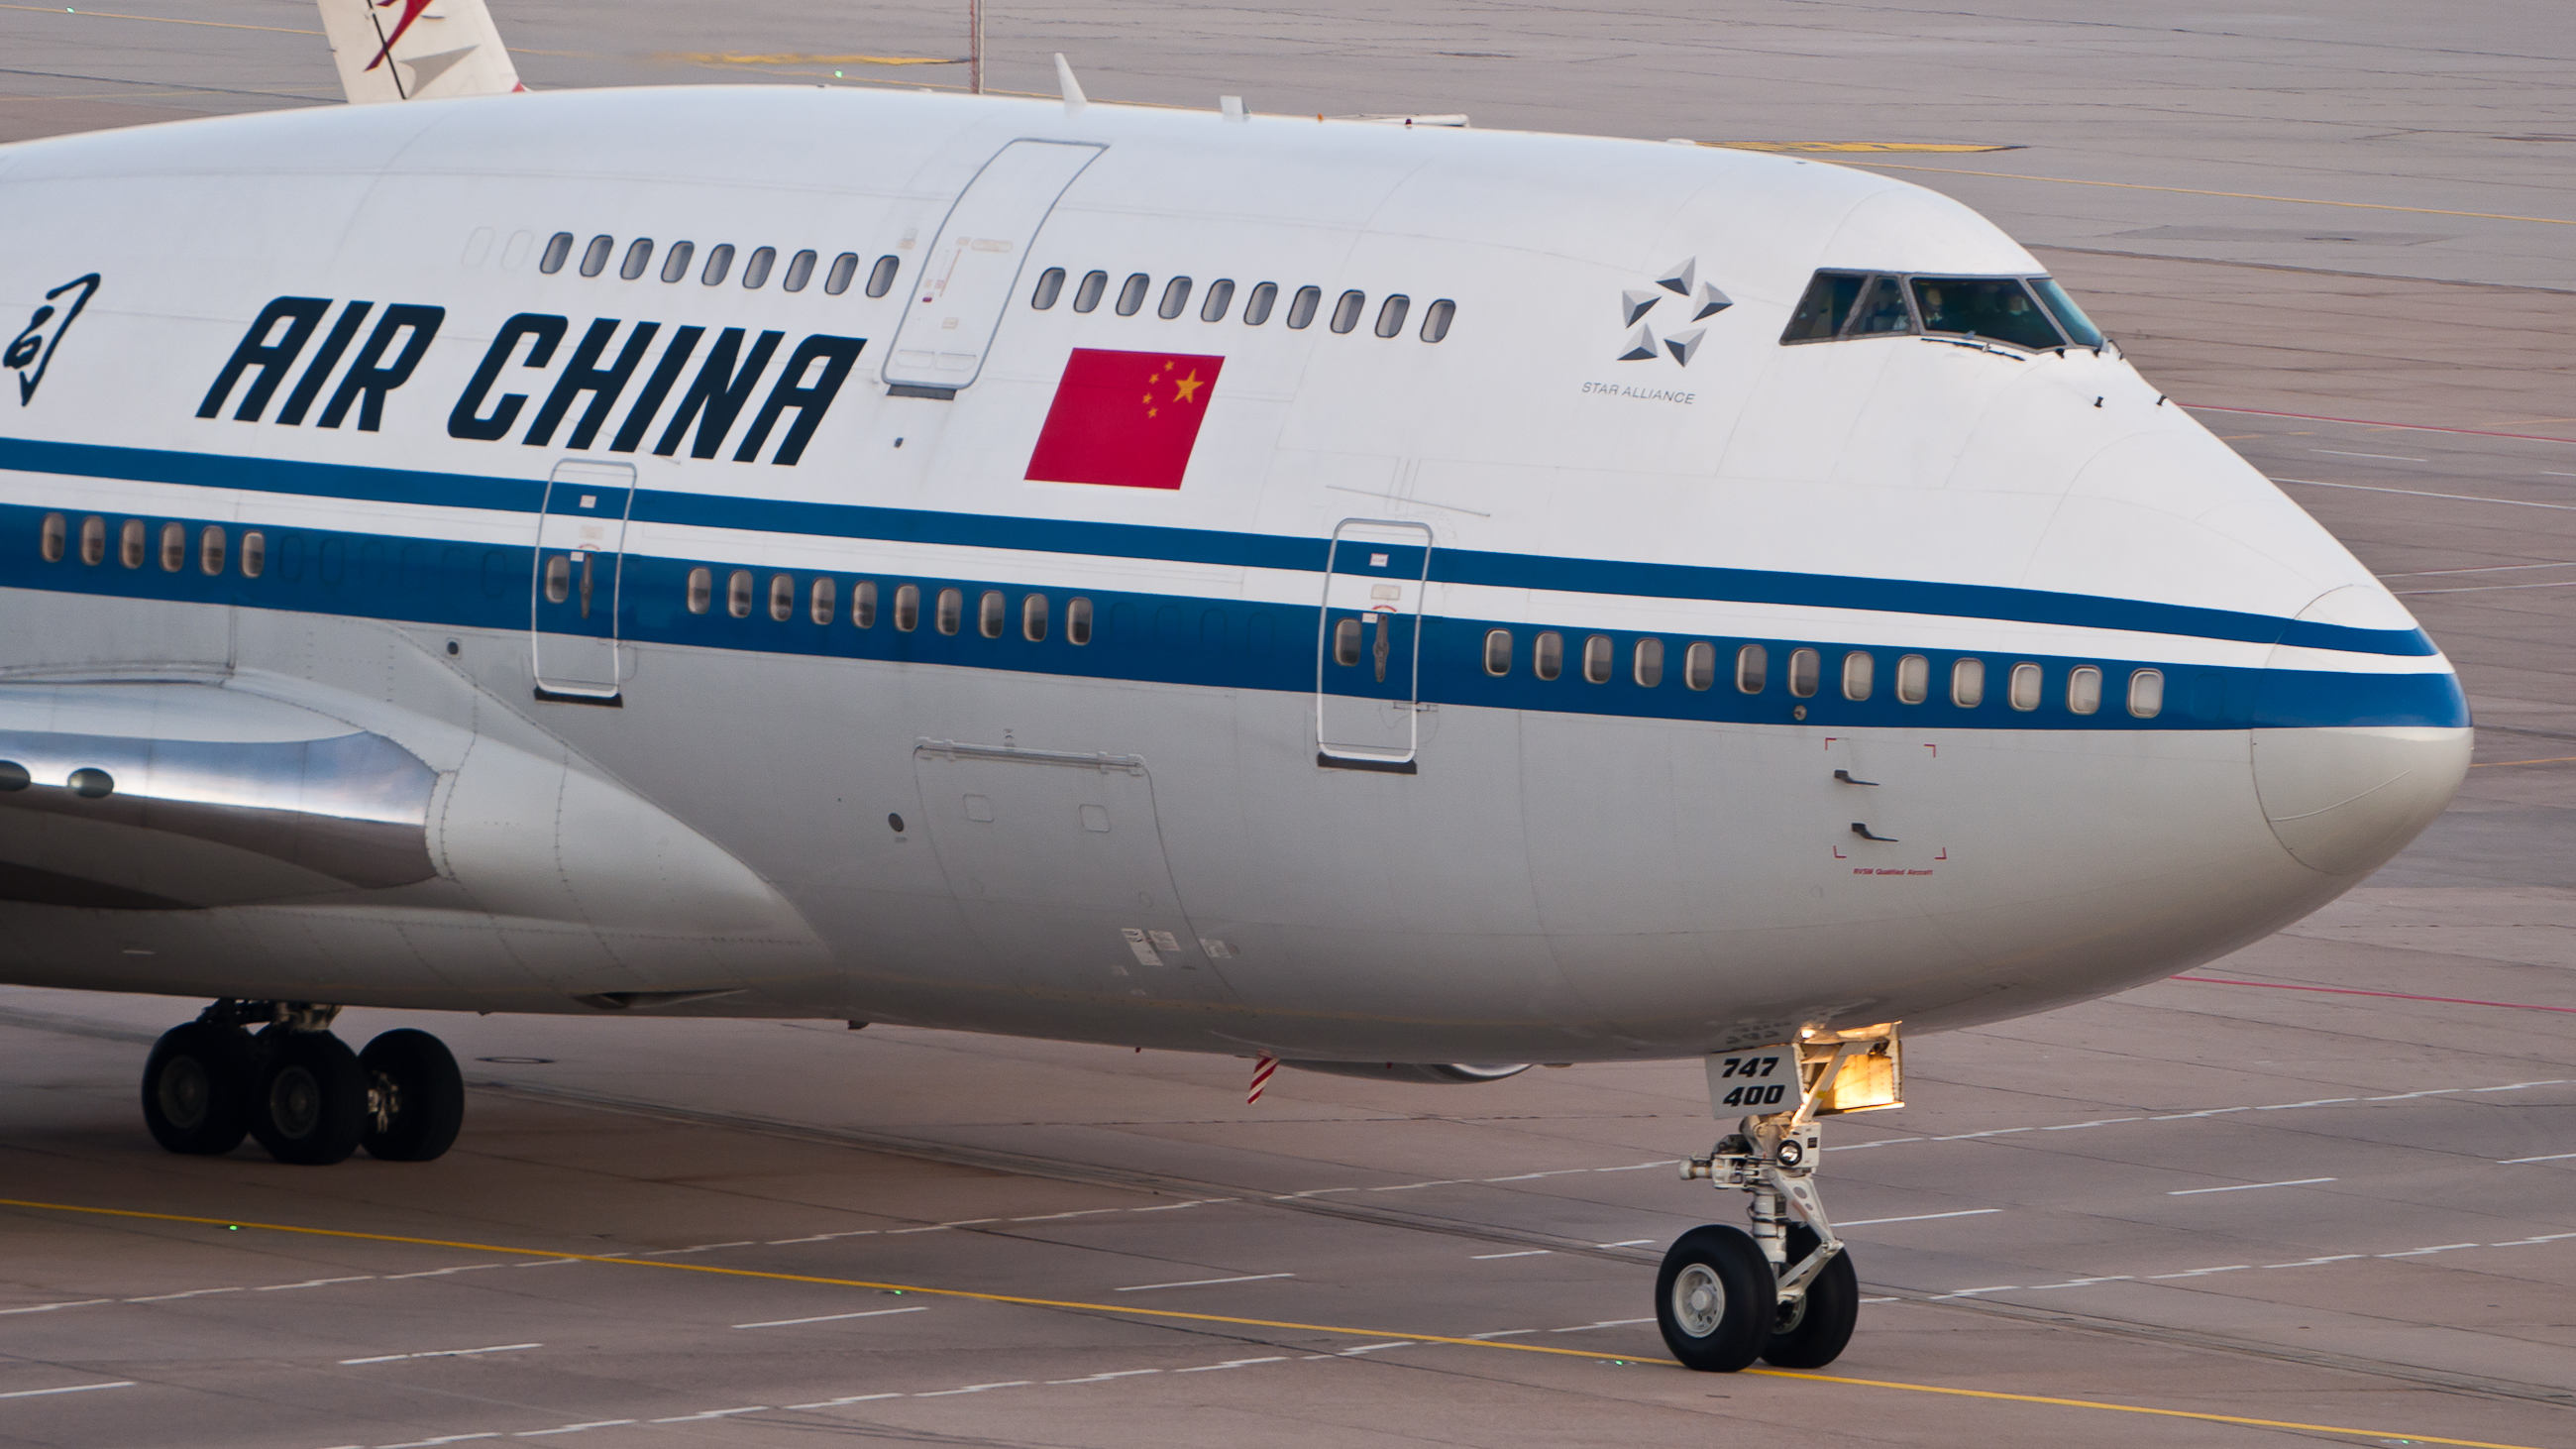 air china #tgif mornings can be rough for everyone take 5 minutes out of your morning routine to meditate and focus your mind and roll through your day with determination.